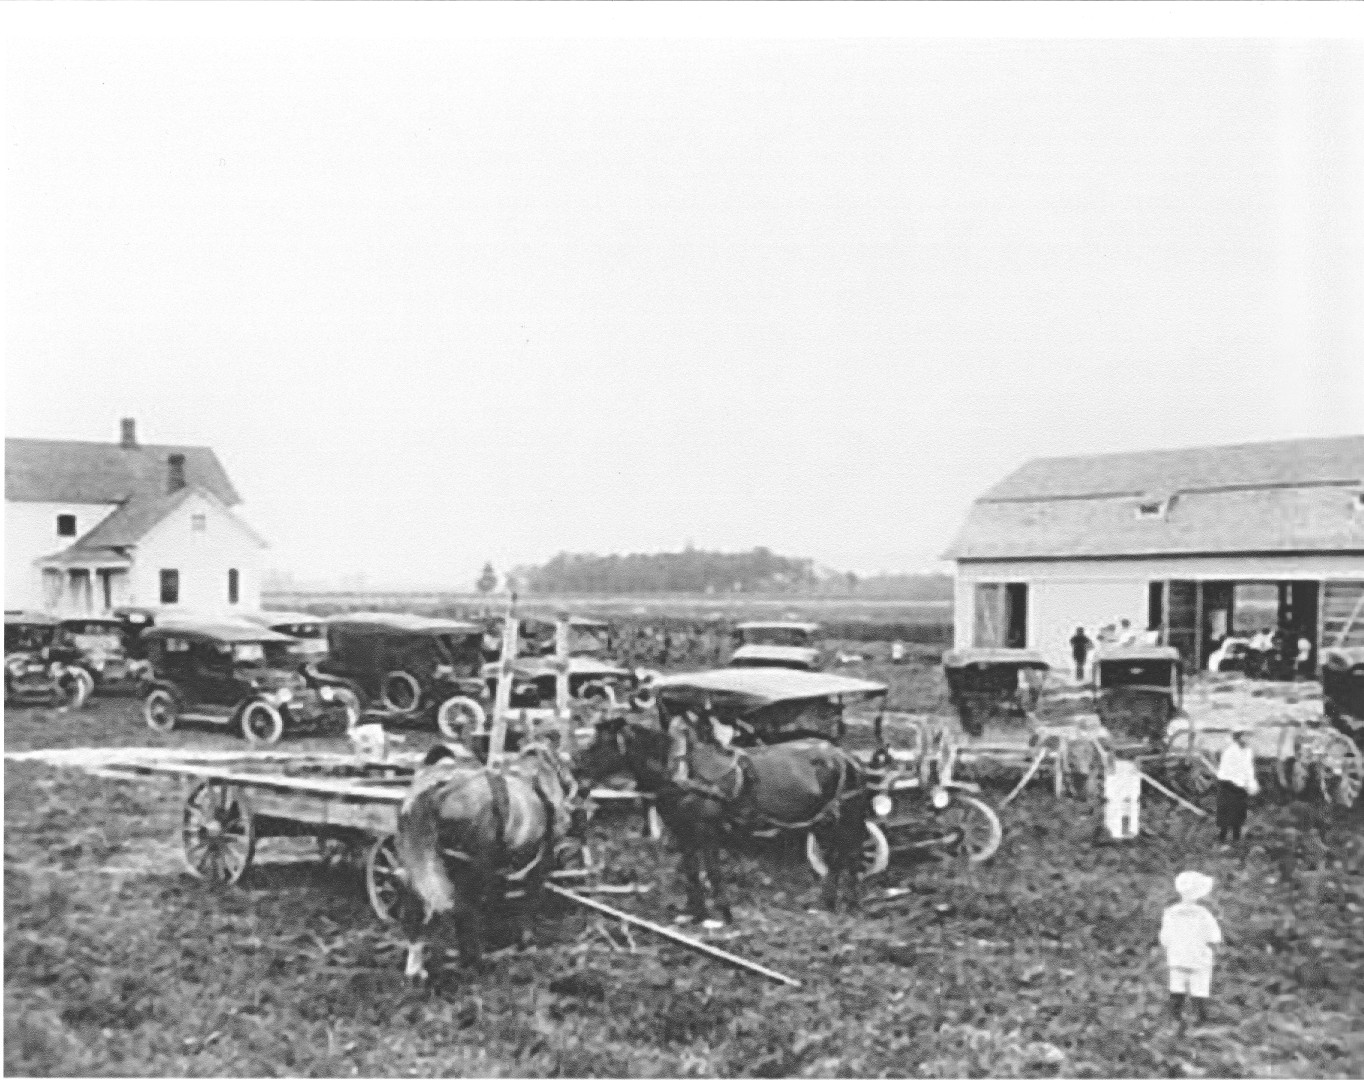 Station in 1912